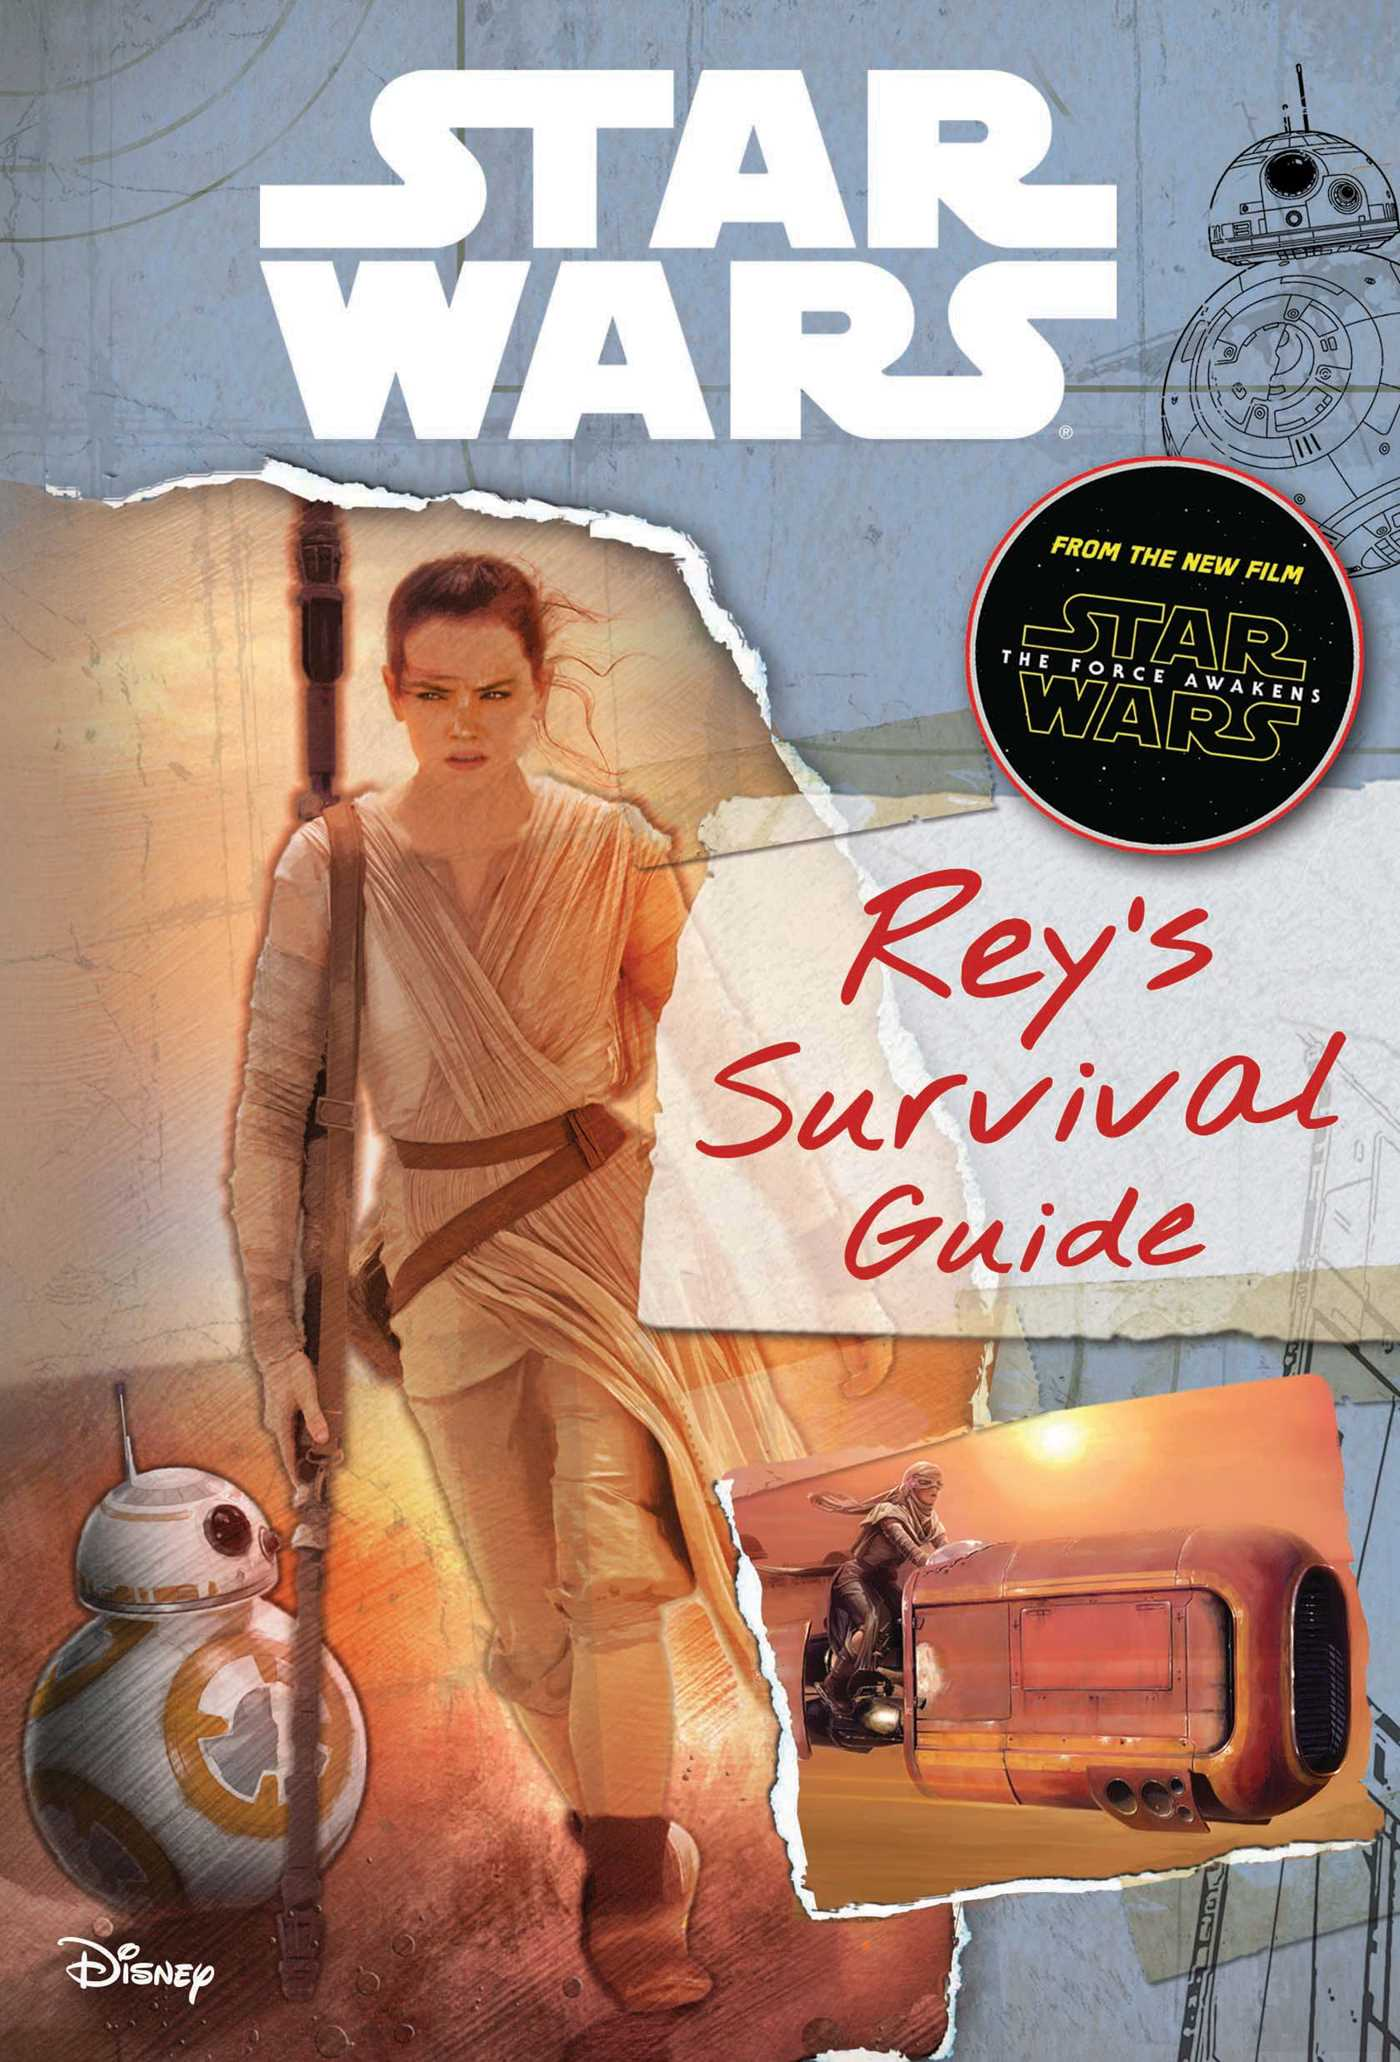 Star wars the force awakens reys survival guide 9780794435691 hr